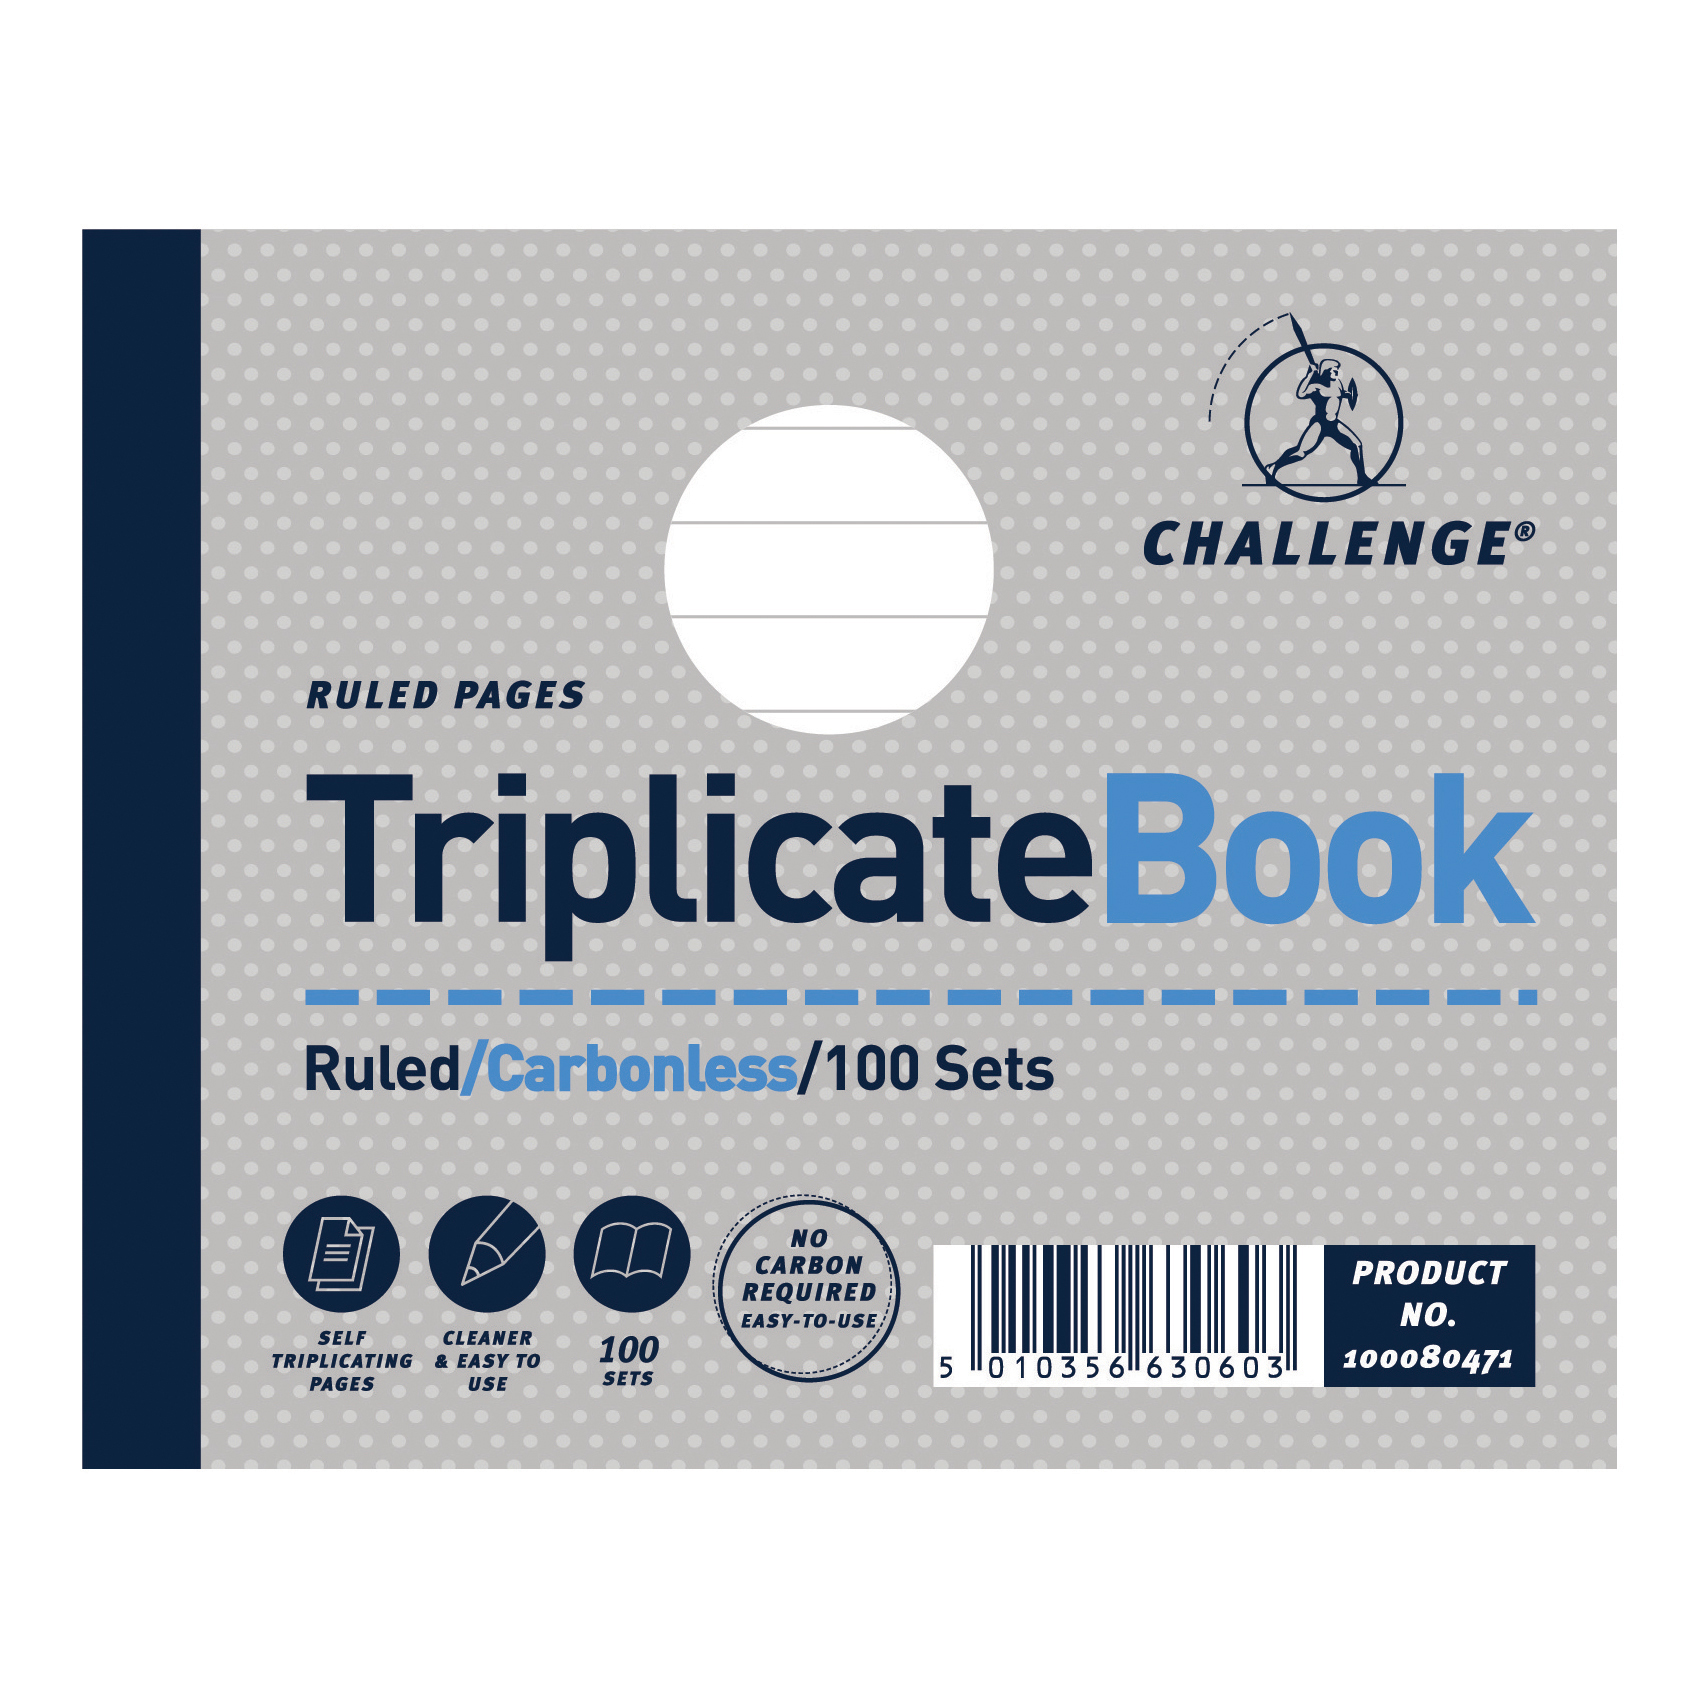 Triplicate Challenge Triplicate Book Carbonless Ruled 100 Sets 105x130mm Ref 100080471 Pack 5